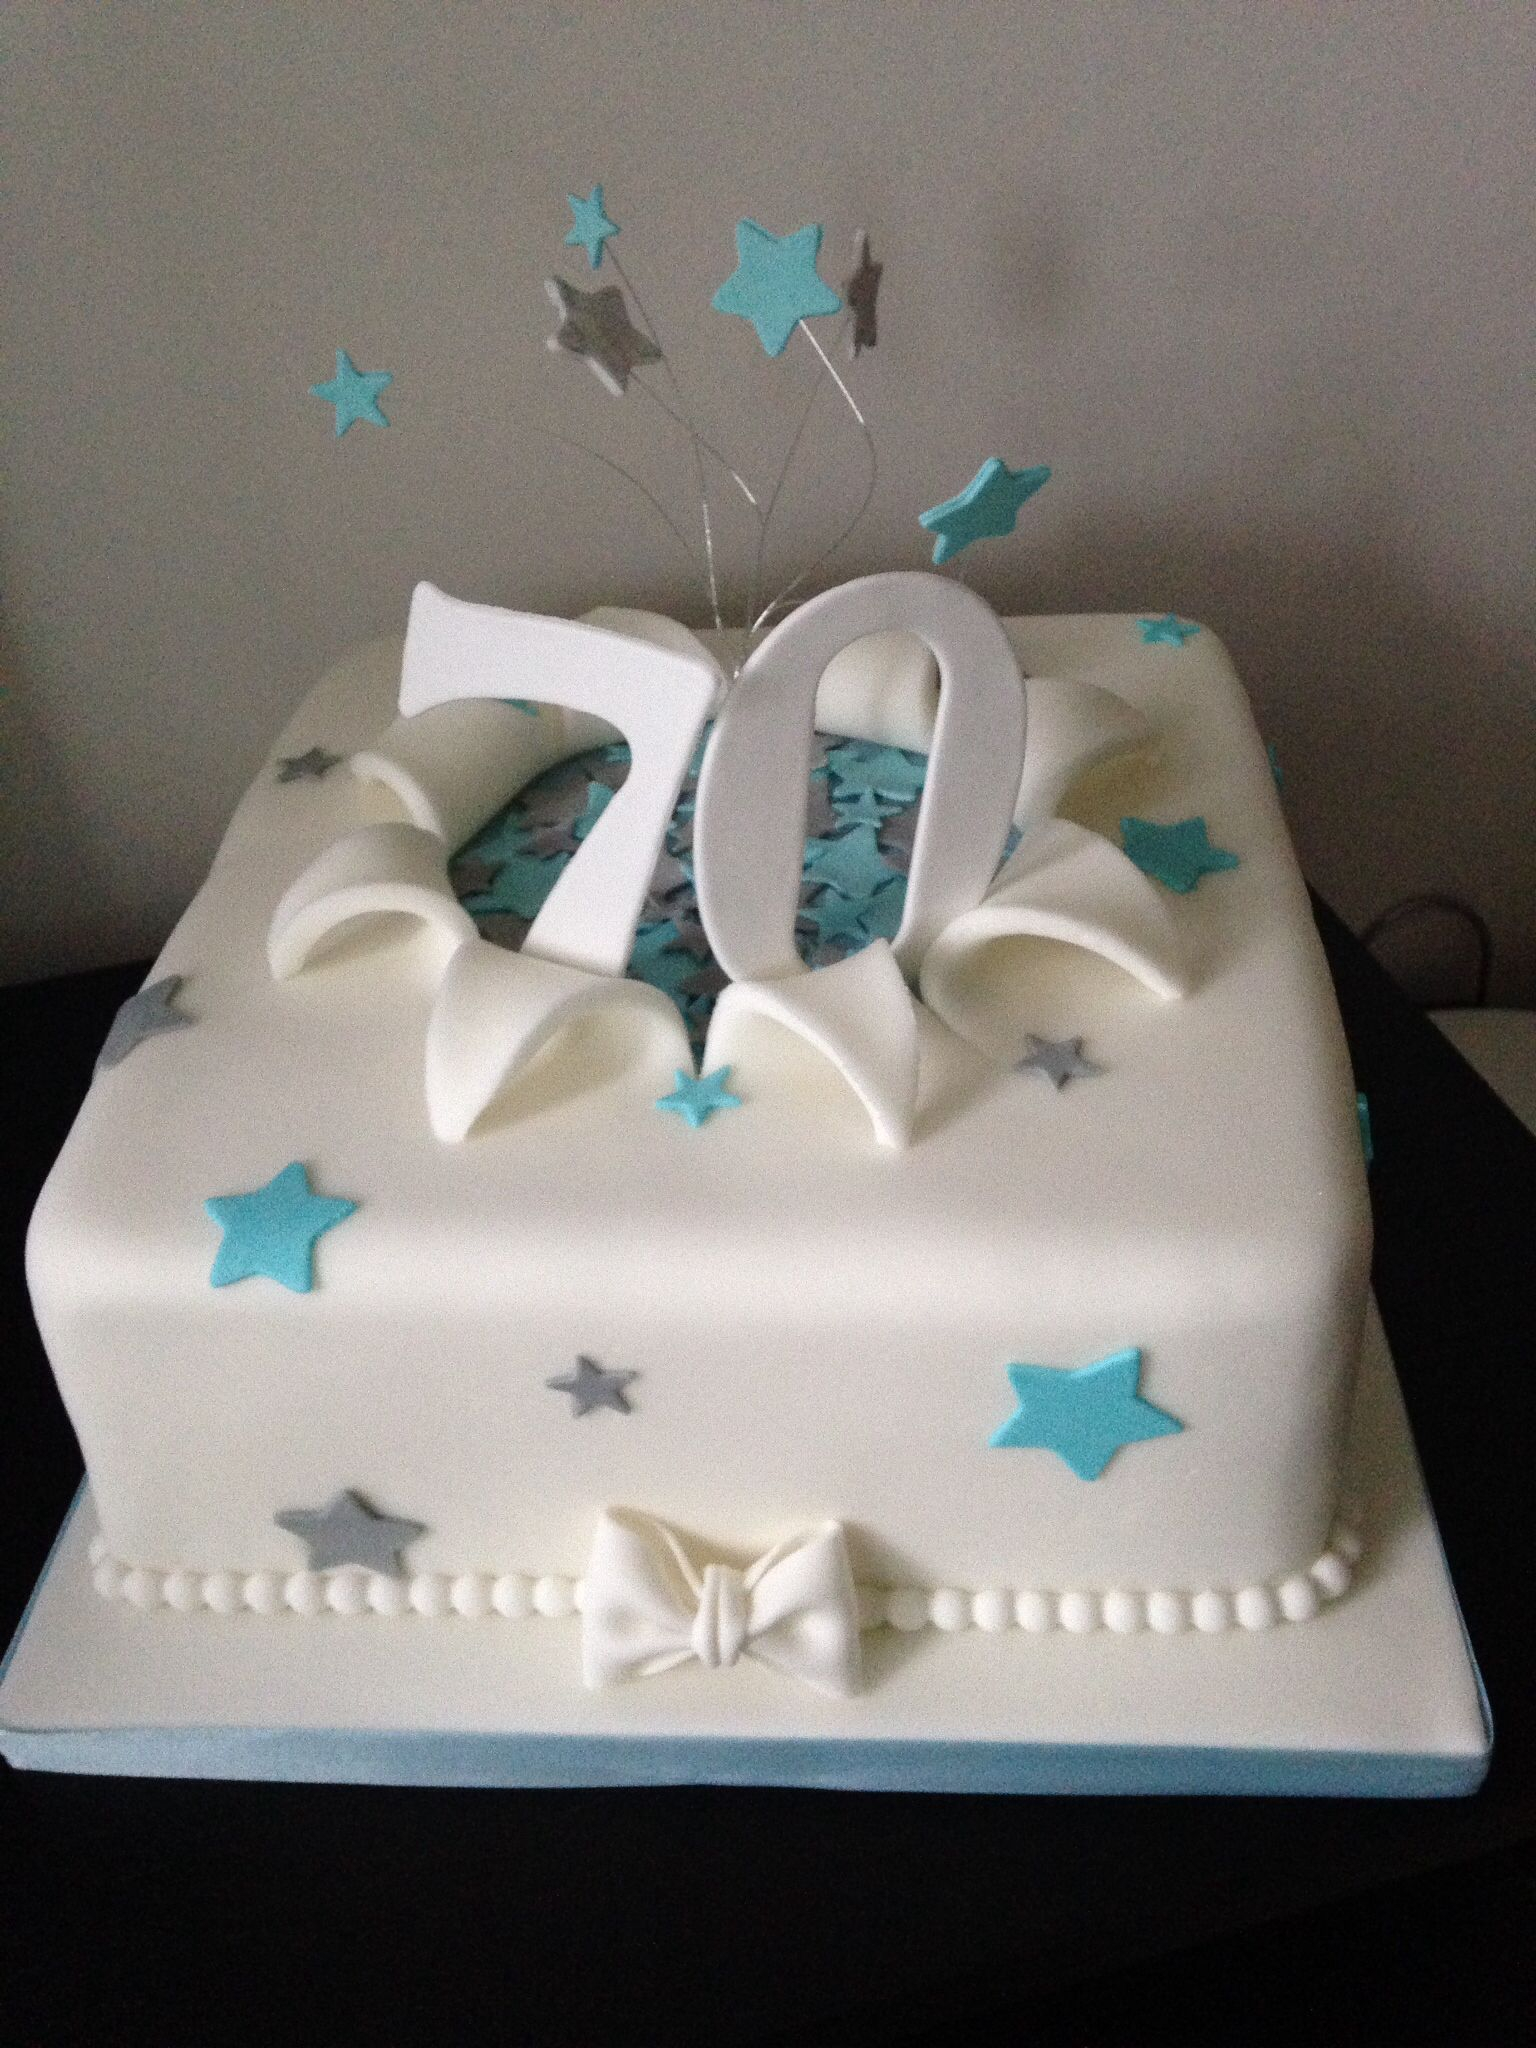 Turquoise Birthday Cake 70th Birthday Cake In Turquoise And Silver Cakes Pinterest